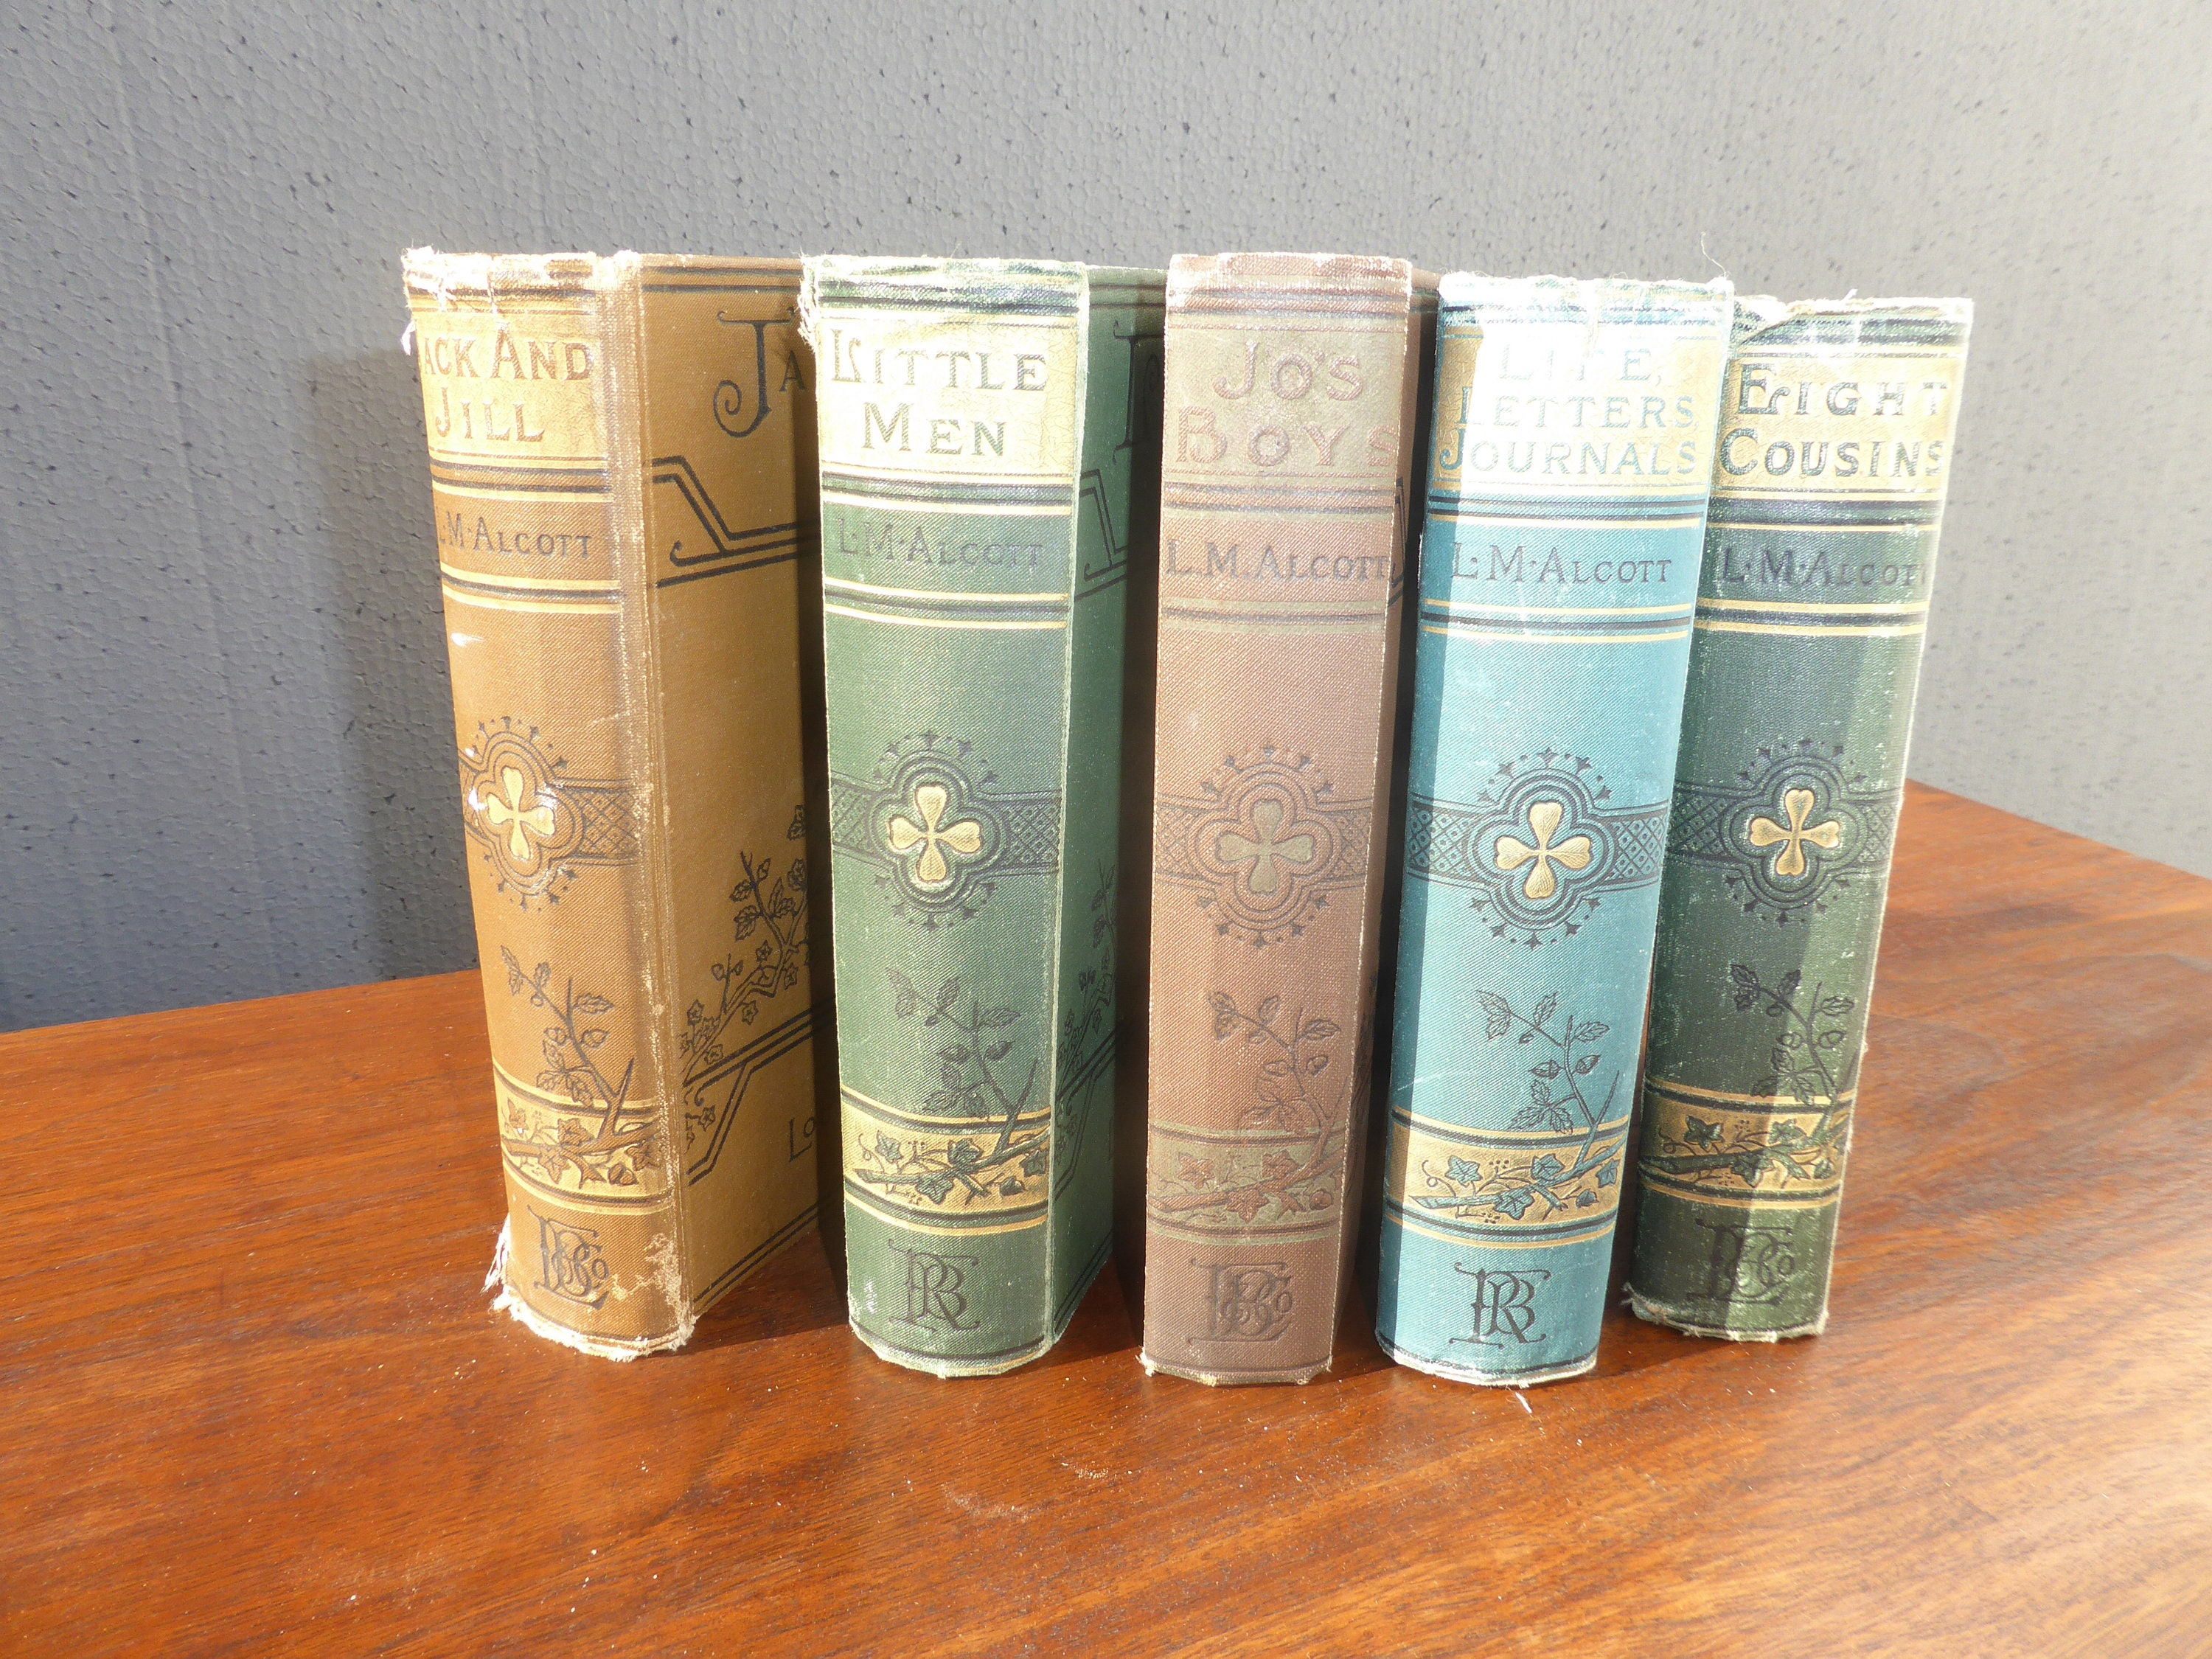 5 Books By Alcott Jack Jill Little Men Jo's Boys 8 Cousins Life Letters Journals by VintageLAfurniture